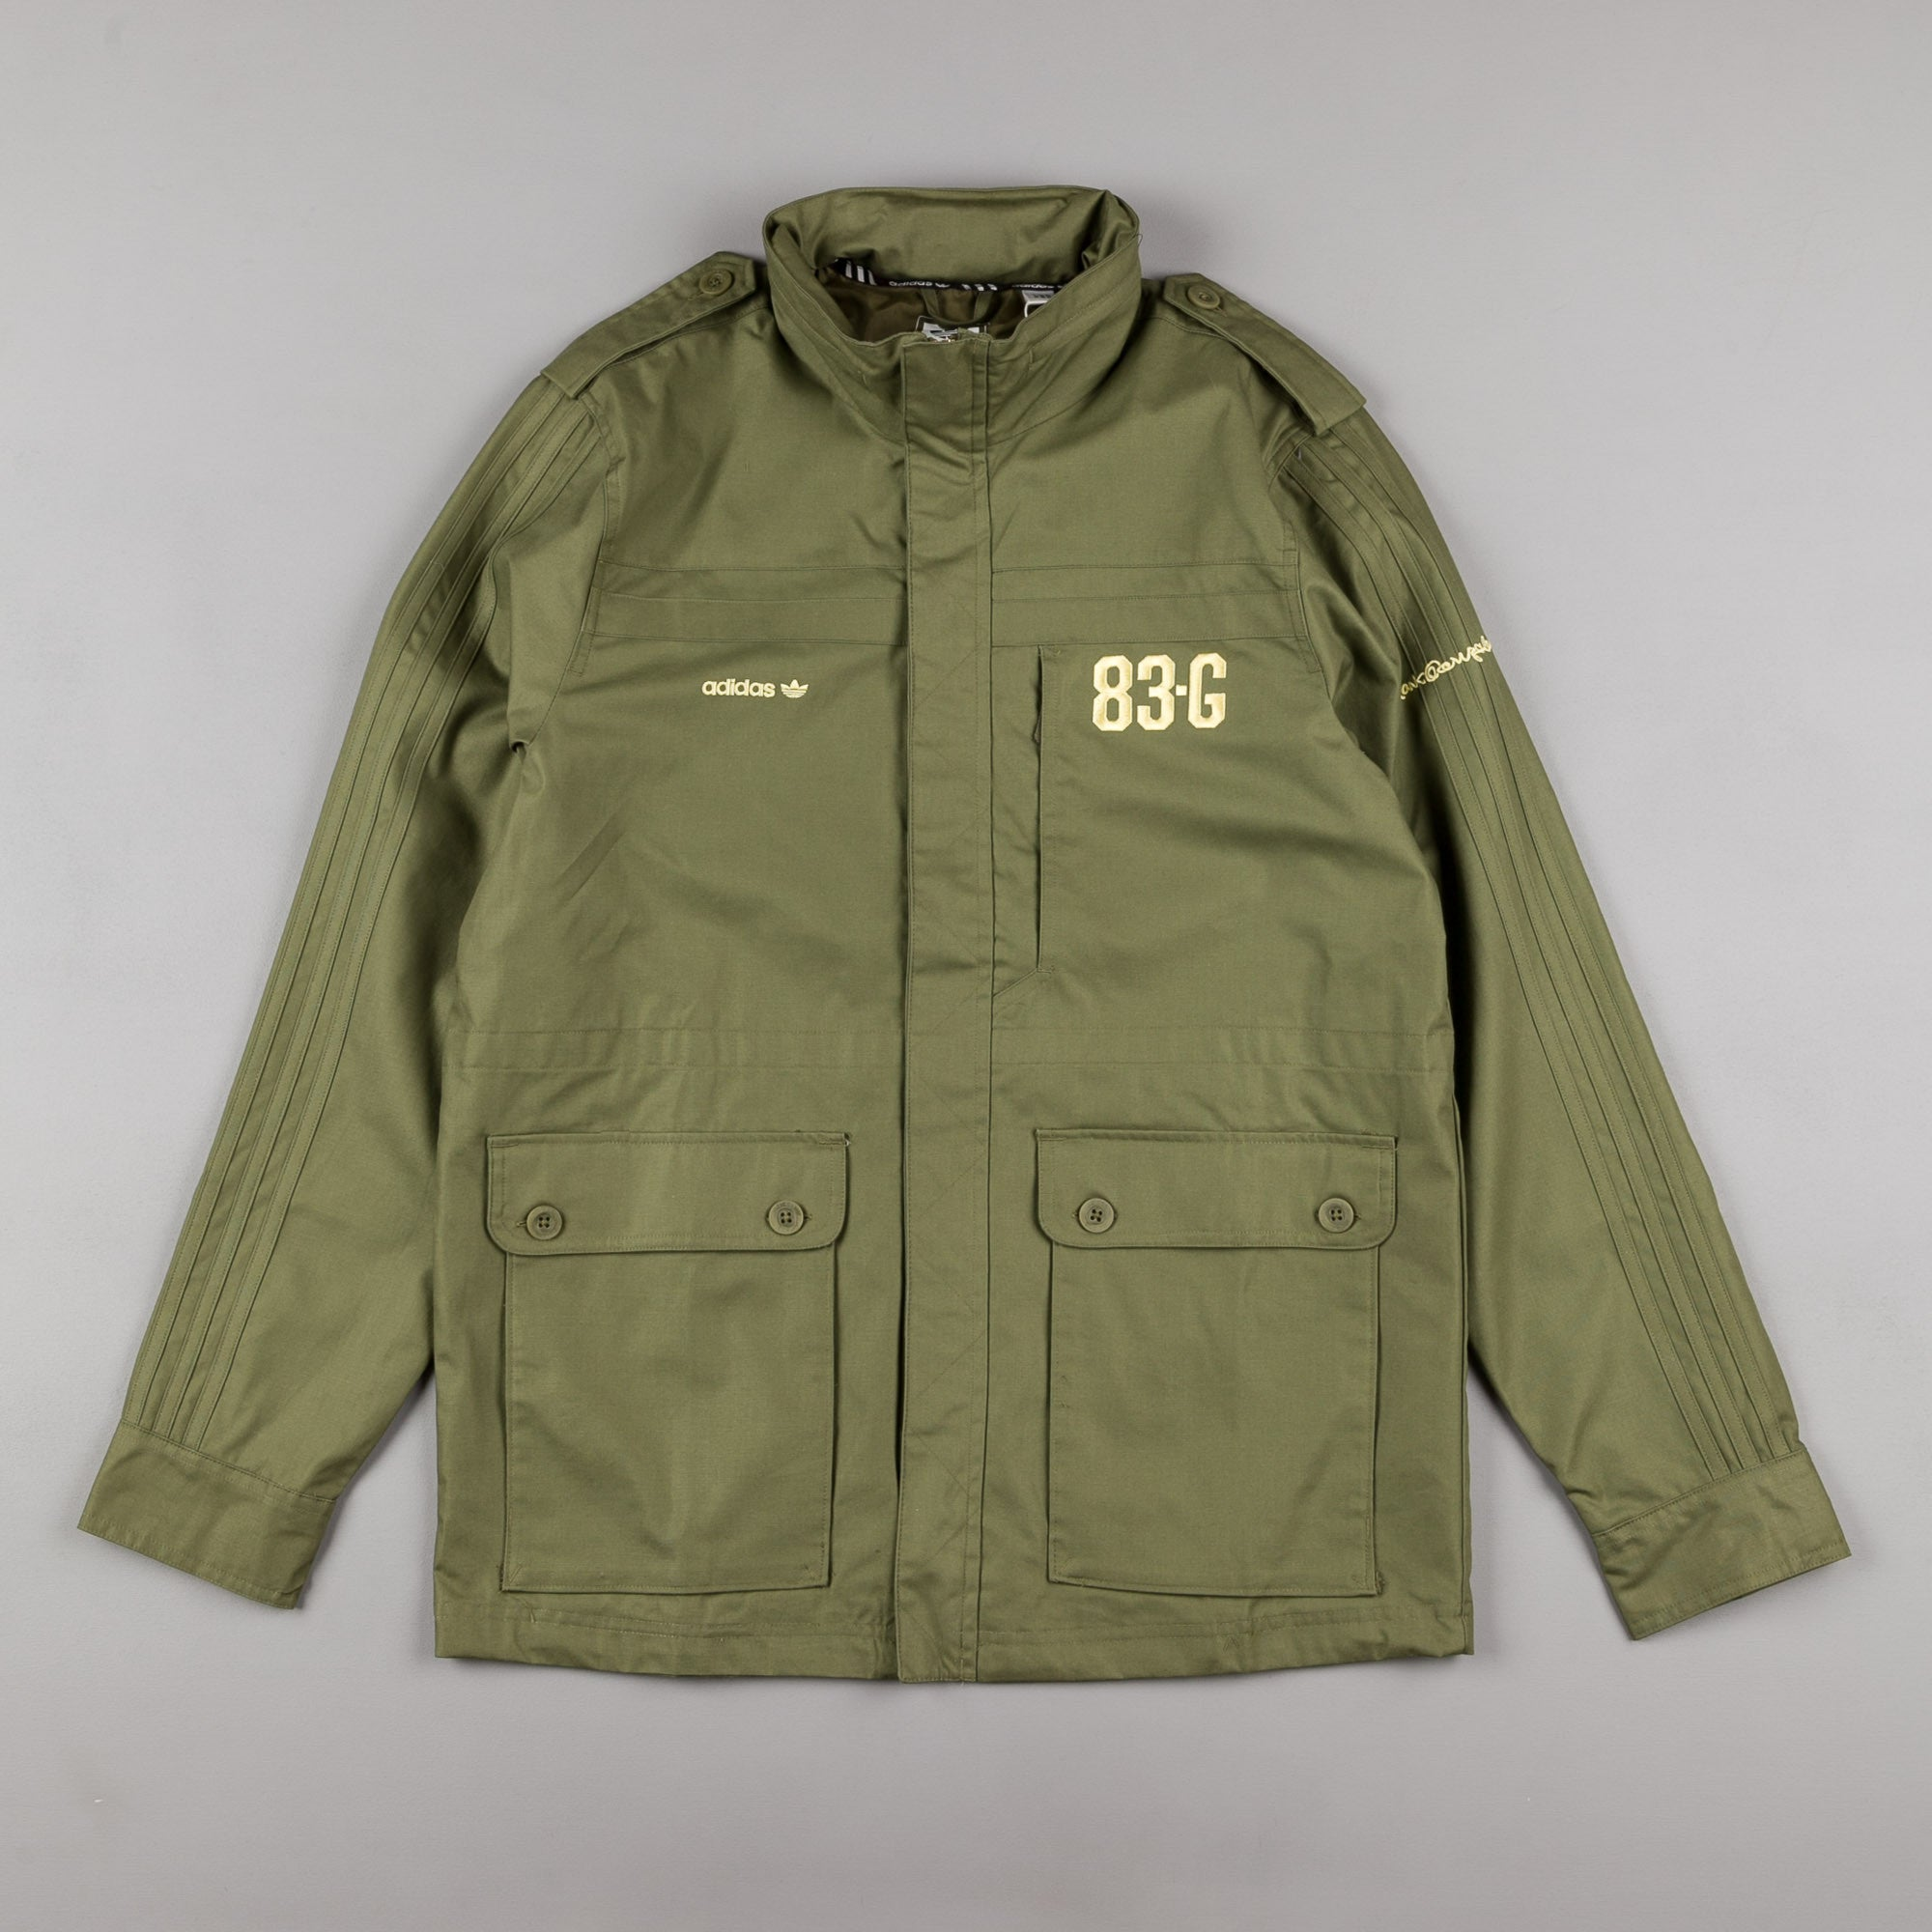 Adidas 83G Military Field Jacket - Olive Cargo